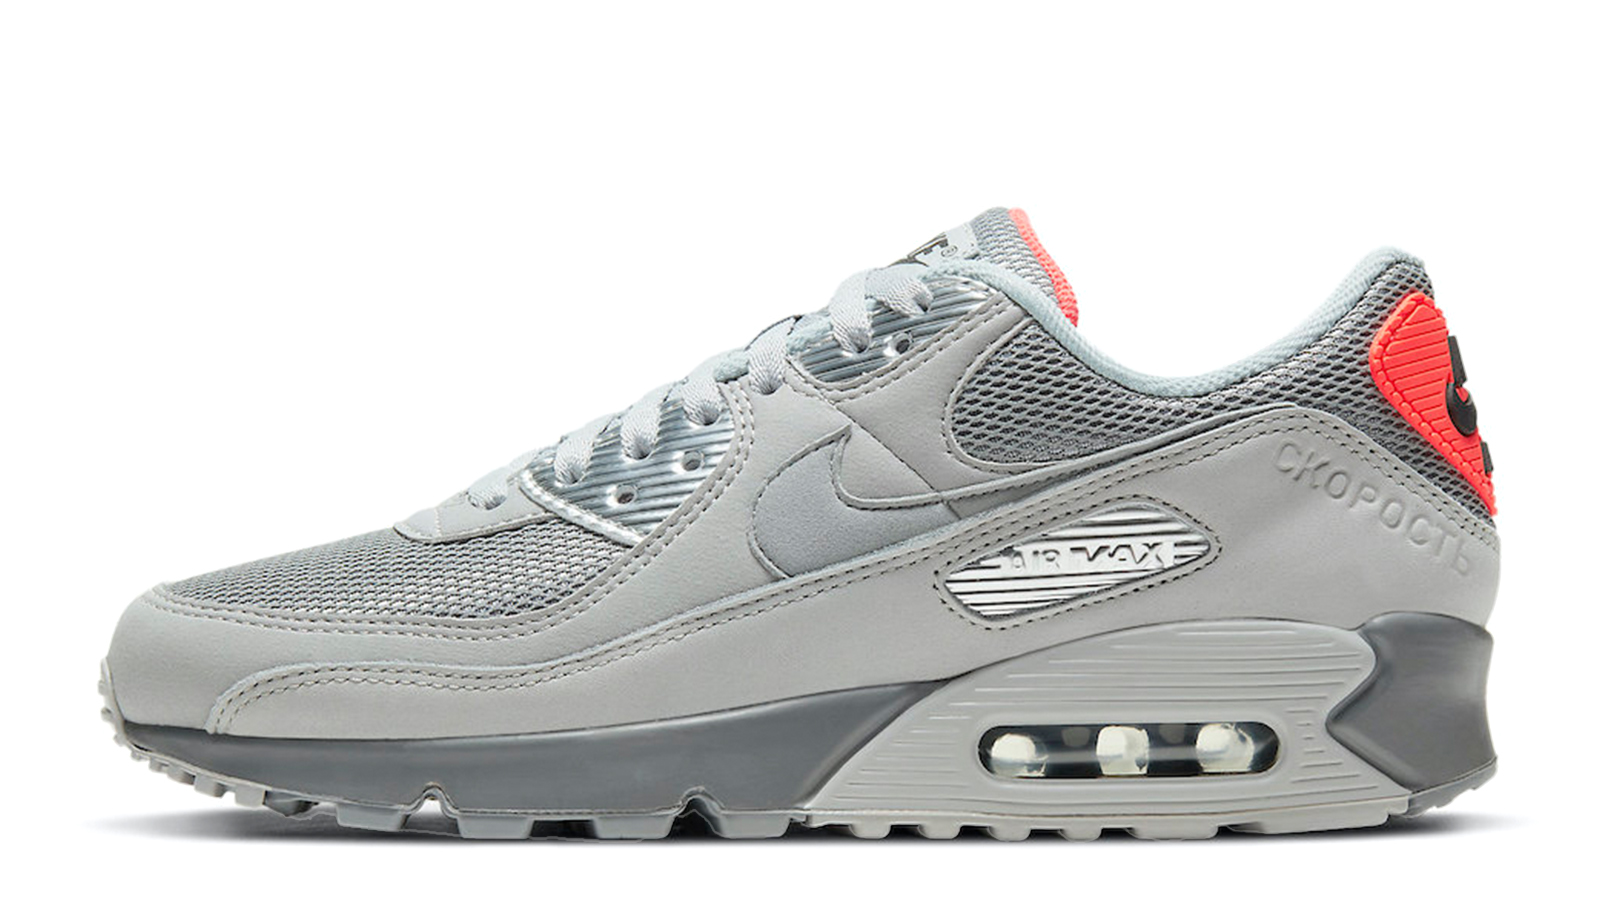 Nike Air Max 90 'Moscow' DC4466-001